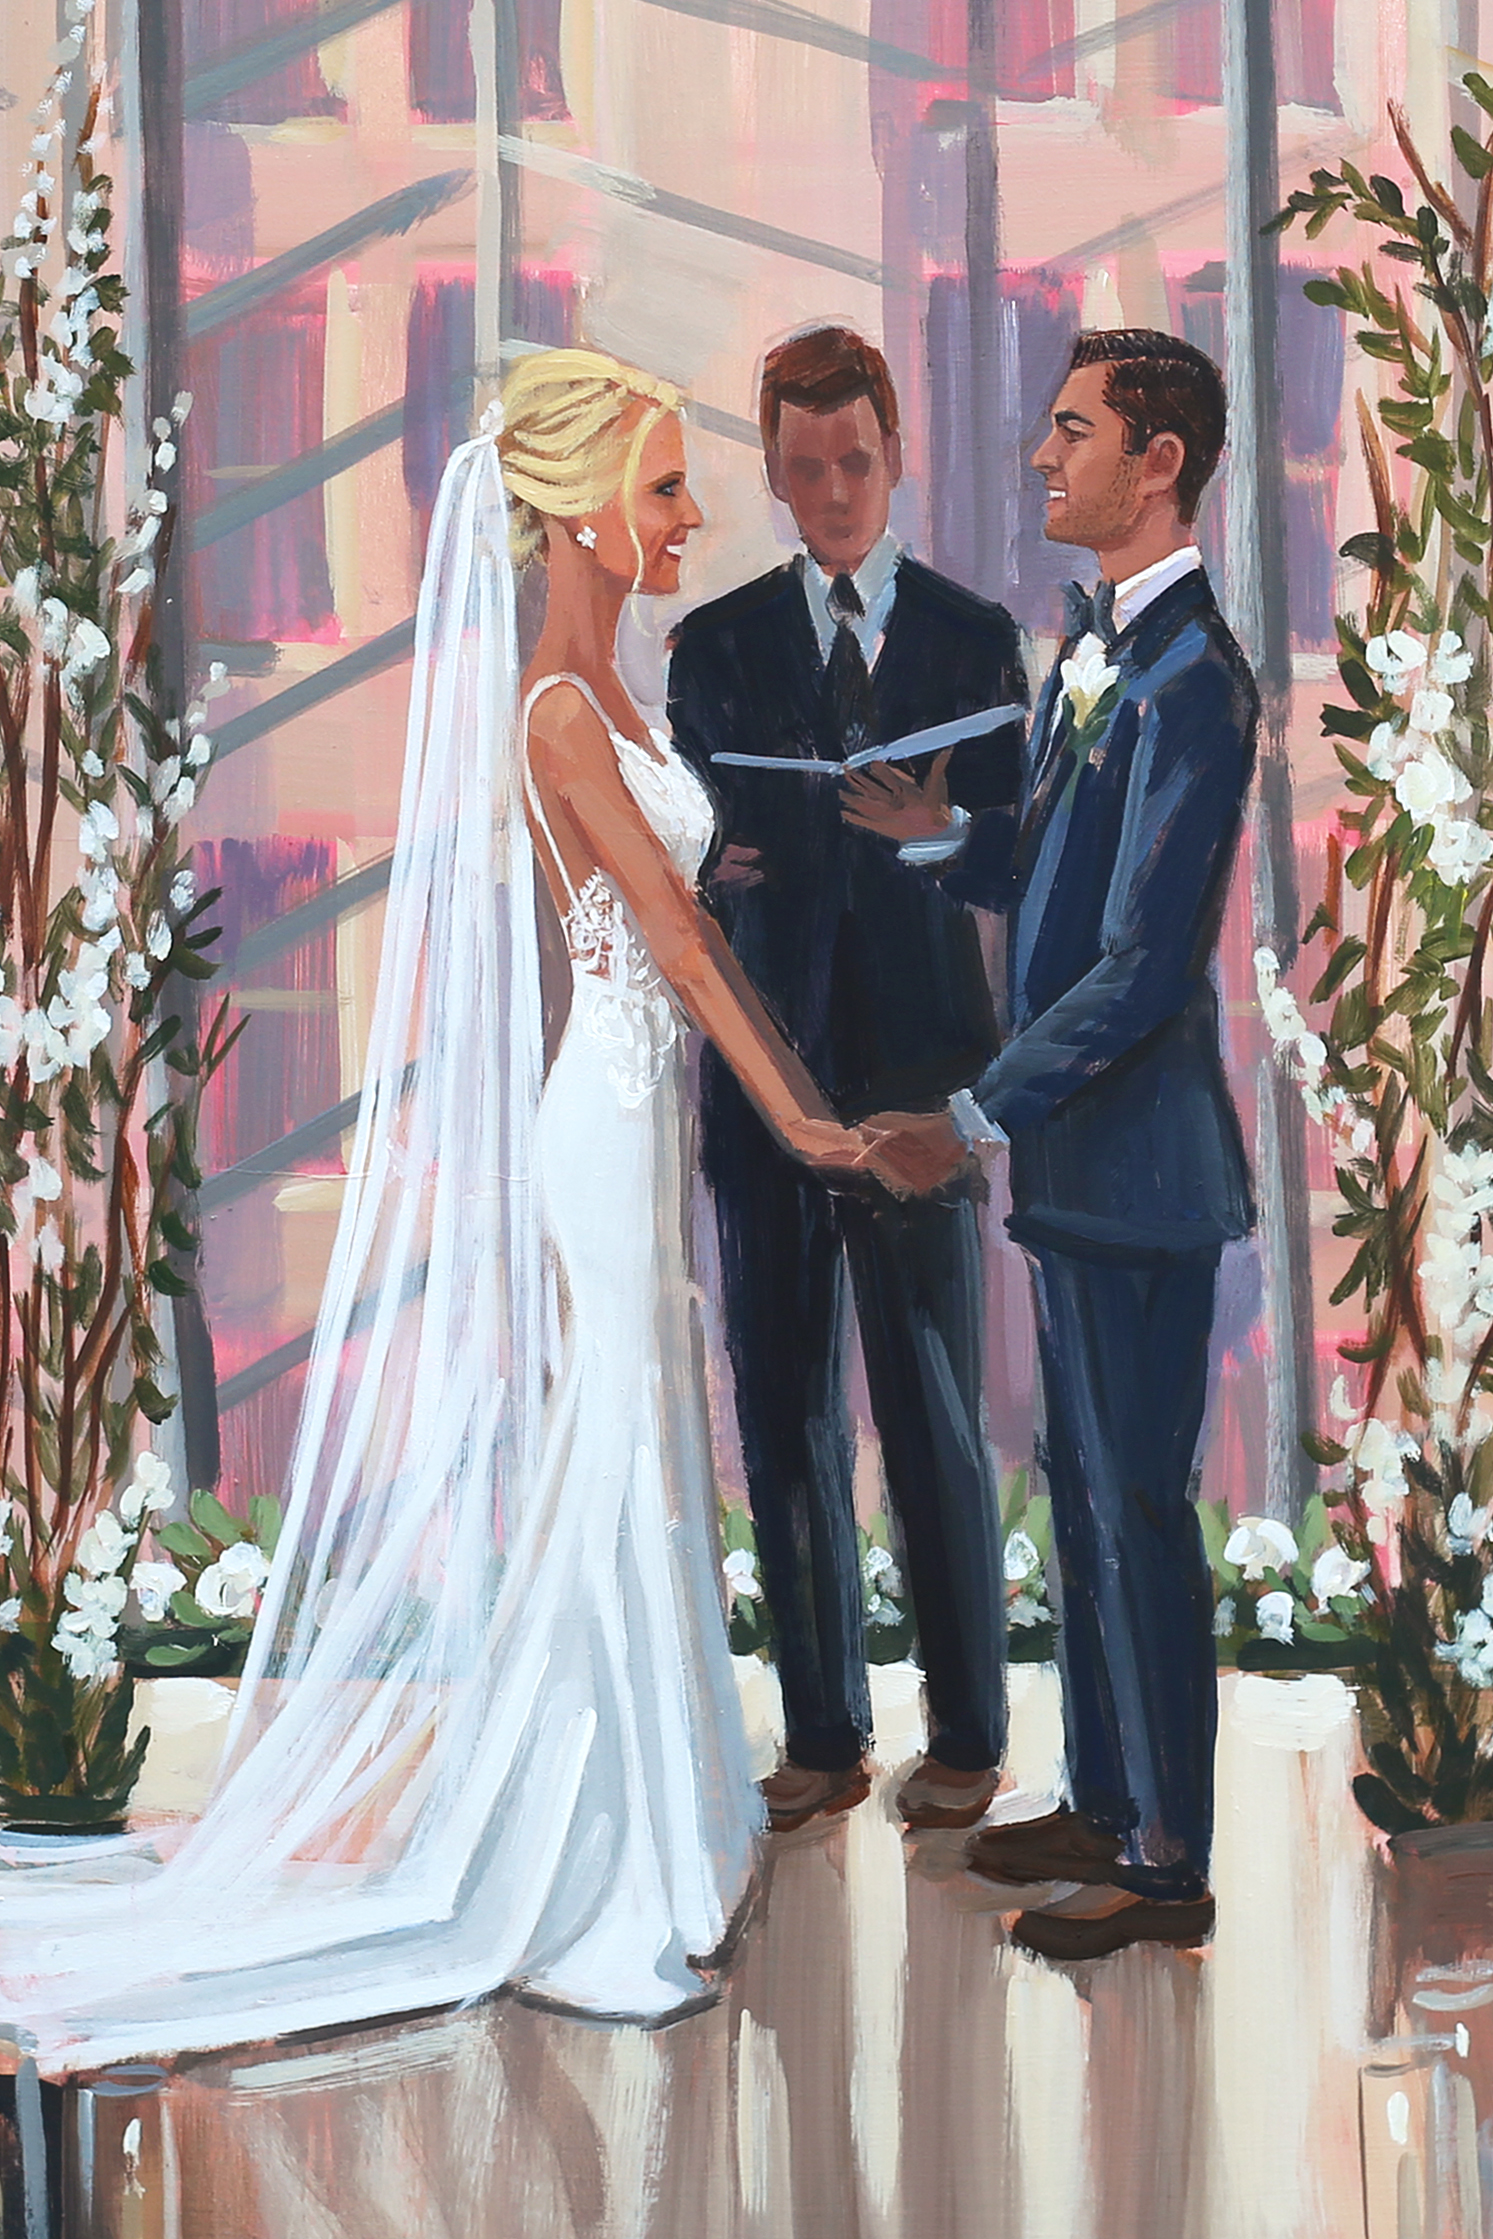 Close up of Erika + Matt's live wedding painting that was created during their ceremony at Philadelphia's Kimmel Center.